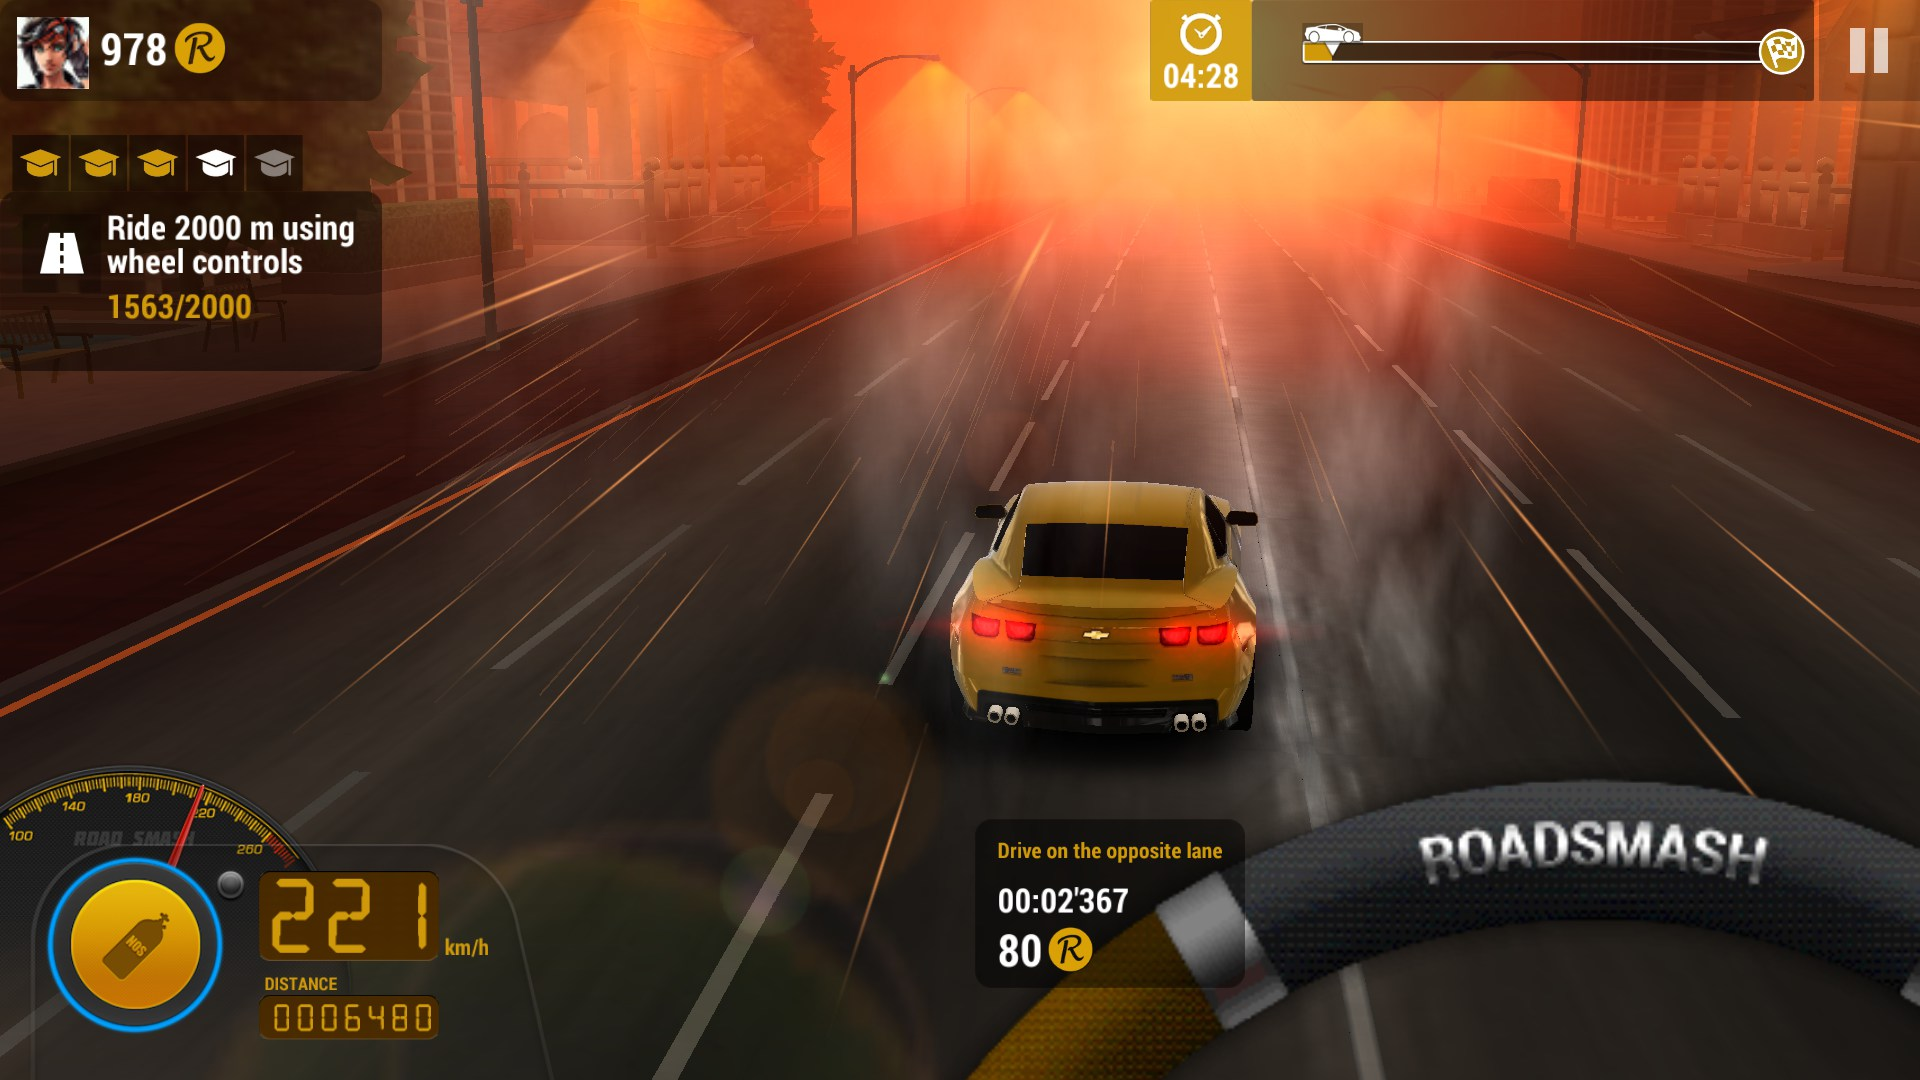 یاری بۆ ئه‌ندرۆید Road Smash 2: Hot Pursuit v1.4.5 MOD Apk [Unlimited Money]